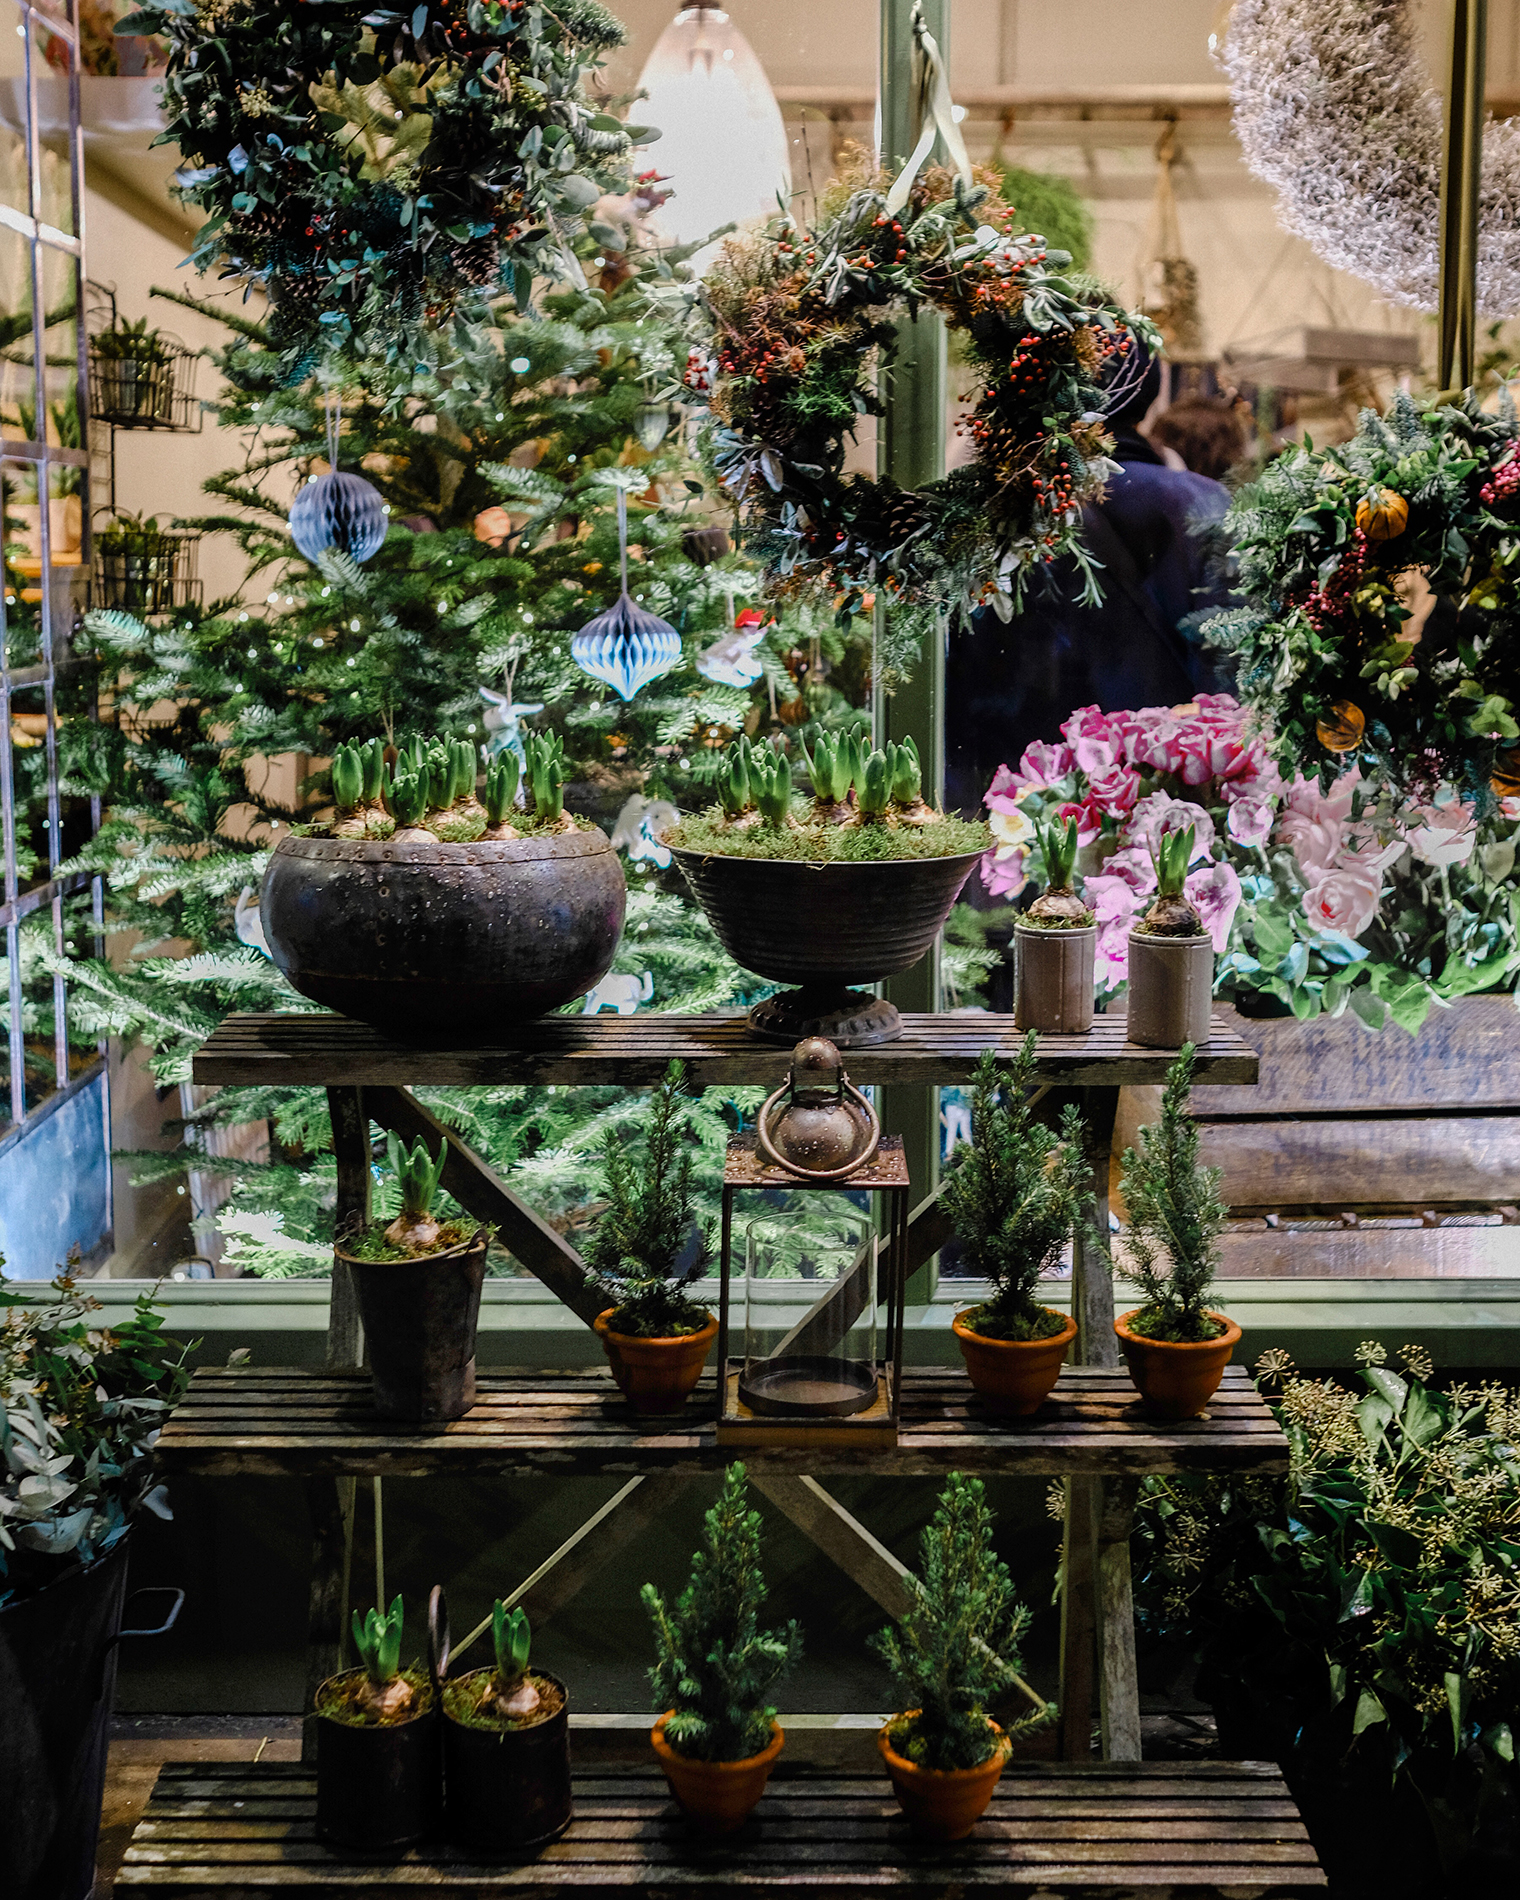 The Real Flower Company opens second London shop in Parsons Green